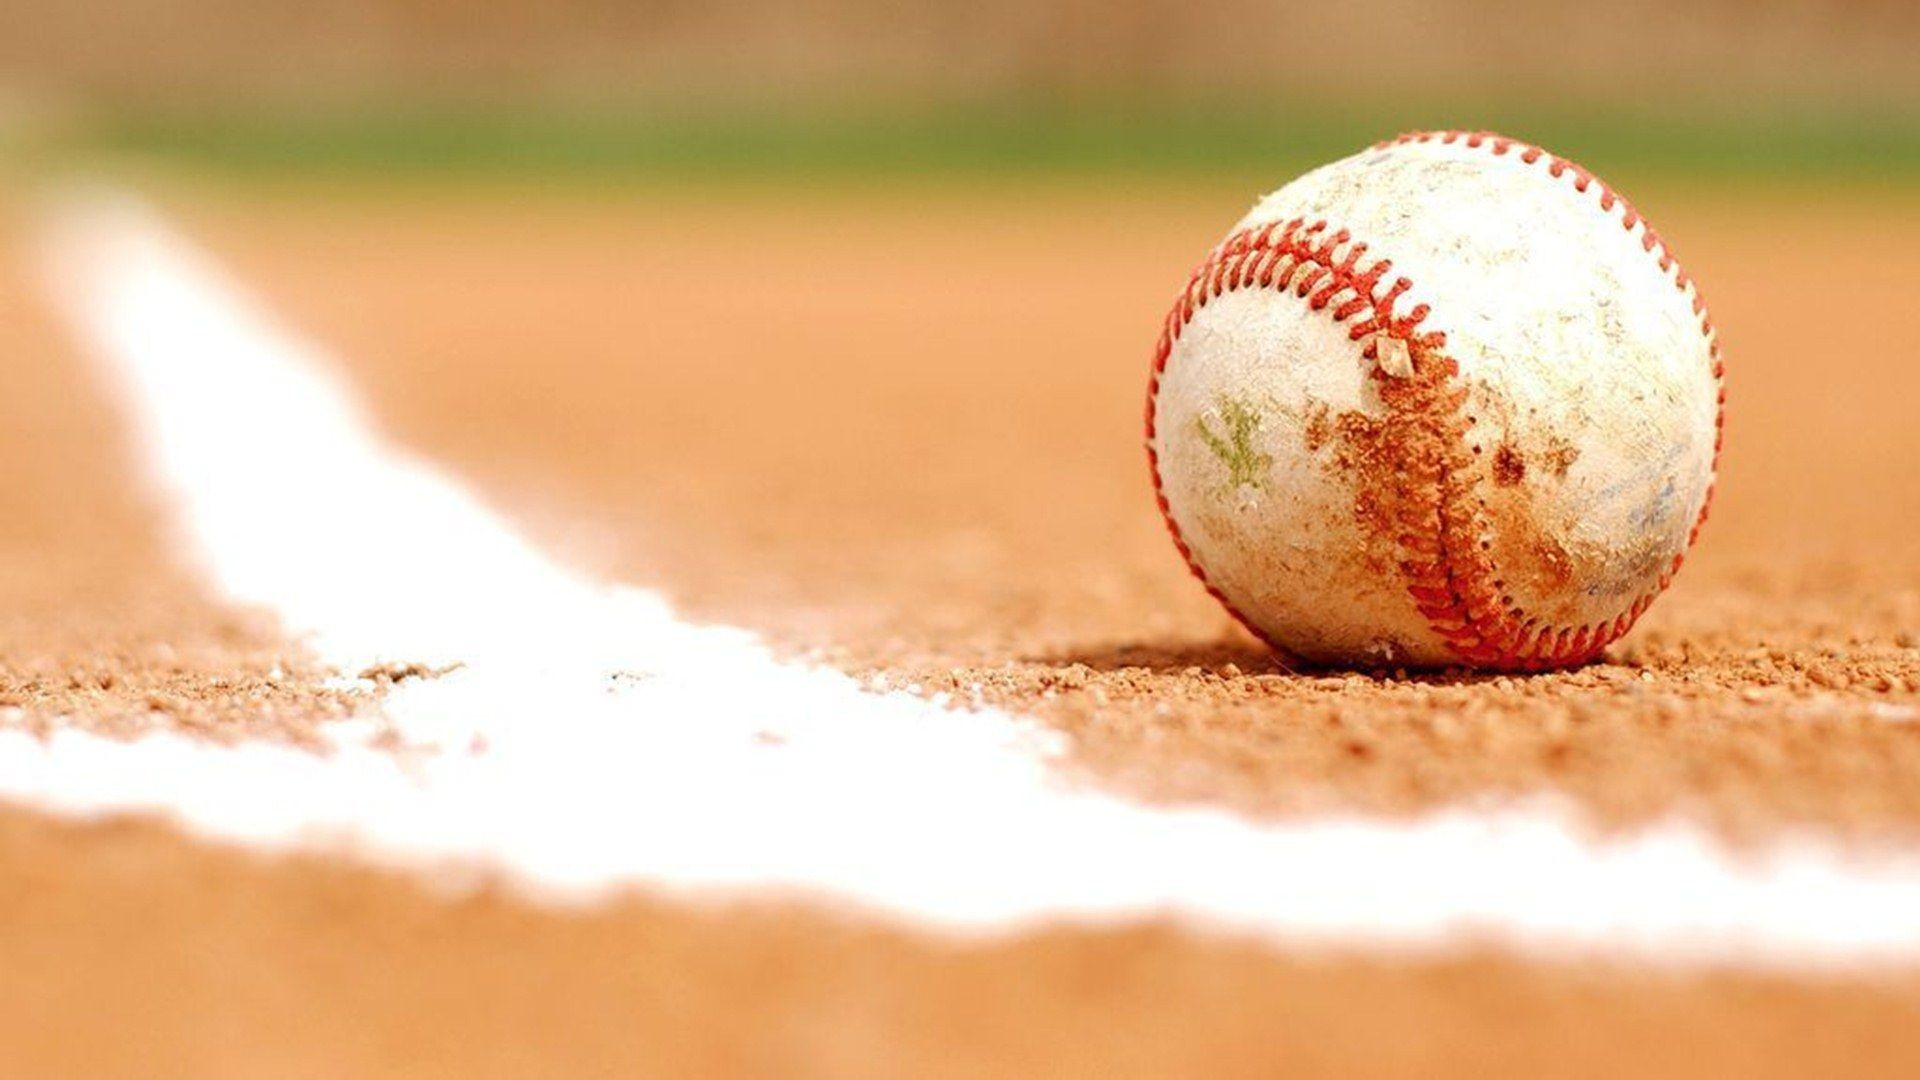 Res: 1920x1080, Baseball HD Wallpaper http://wallpapers-and-backgrounds.net/baseball-hd- wallpaper